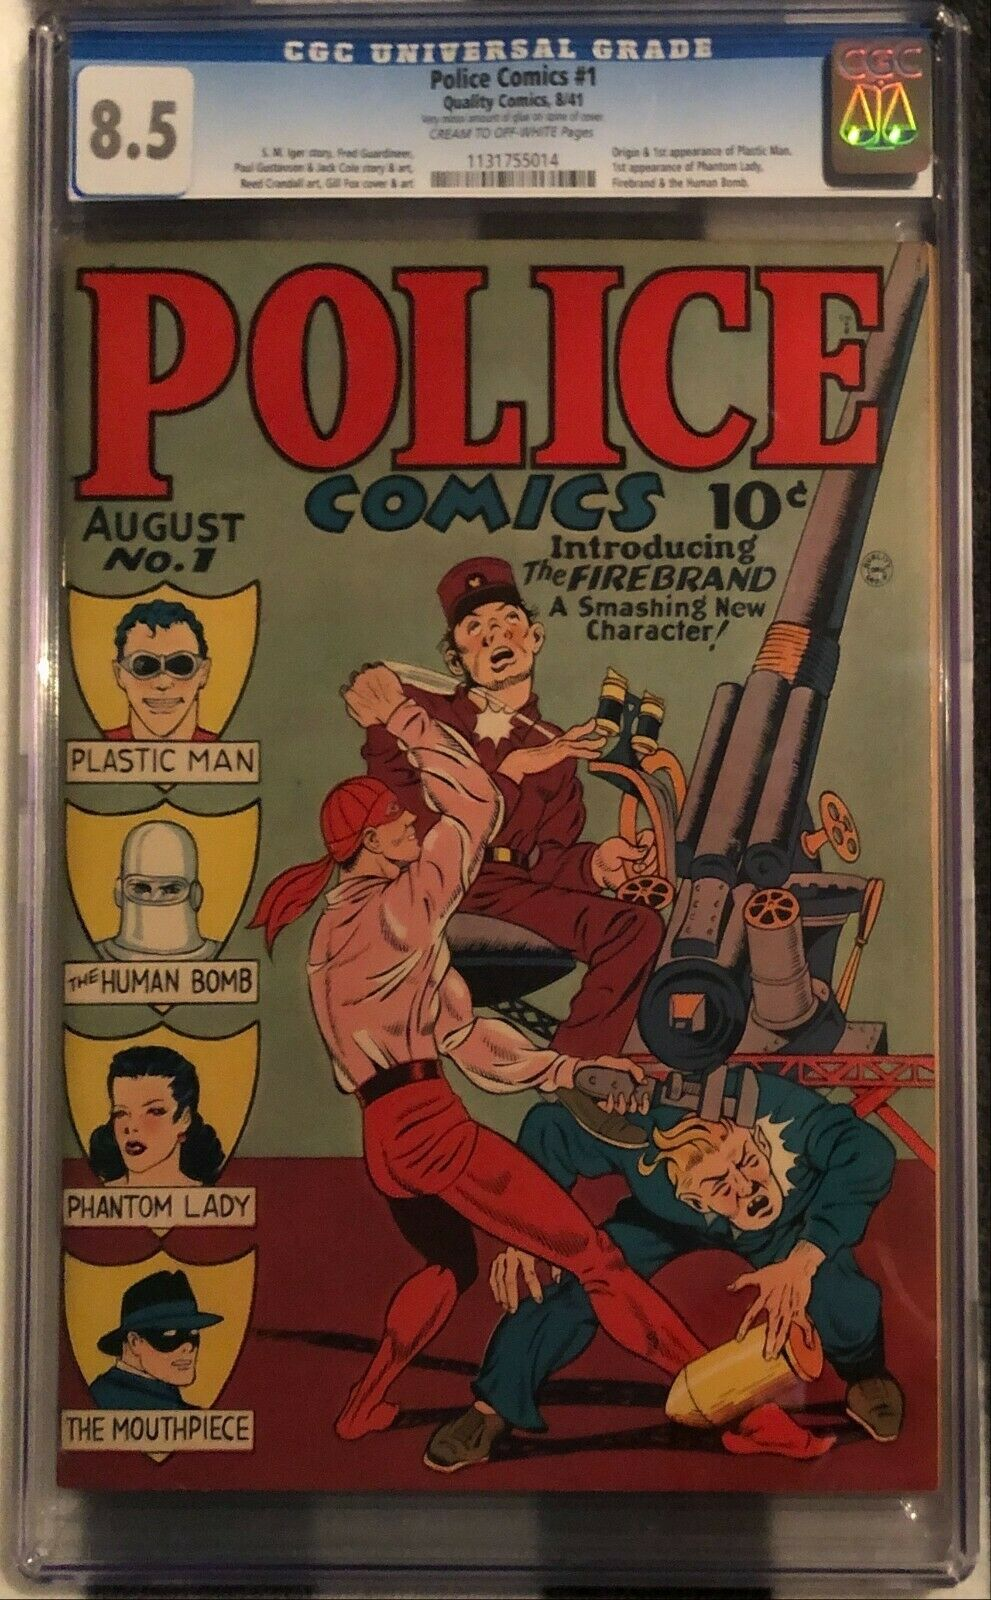 Police Comics 1 1941 CGC 85 CROW Pages  1st Appearance of Plastic Man